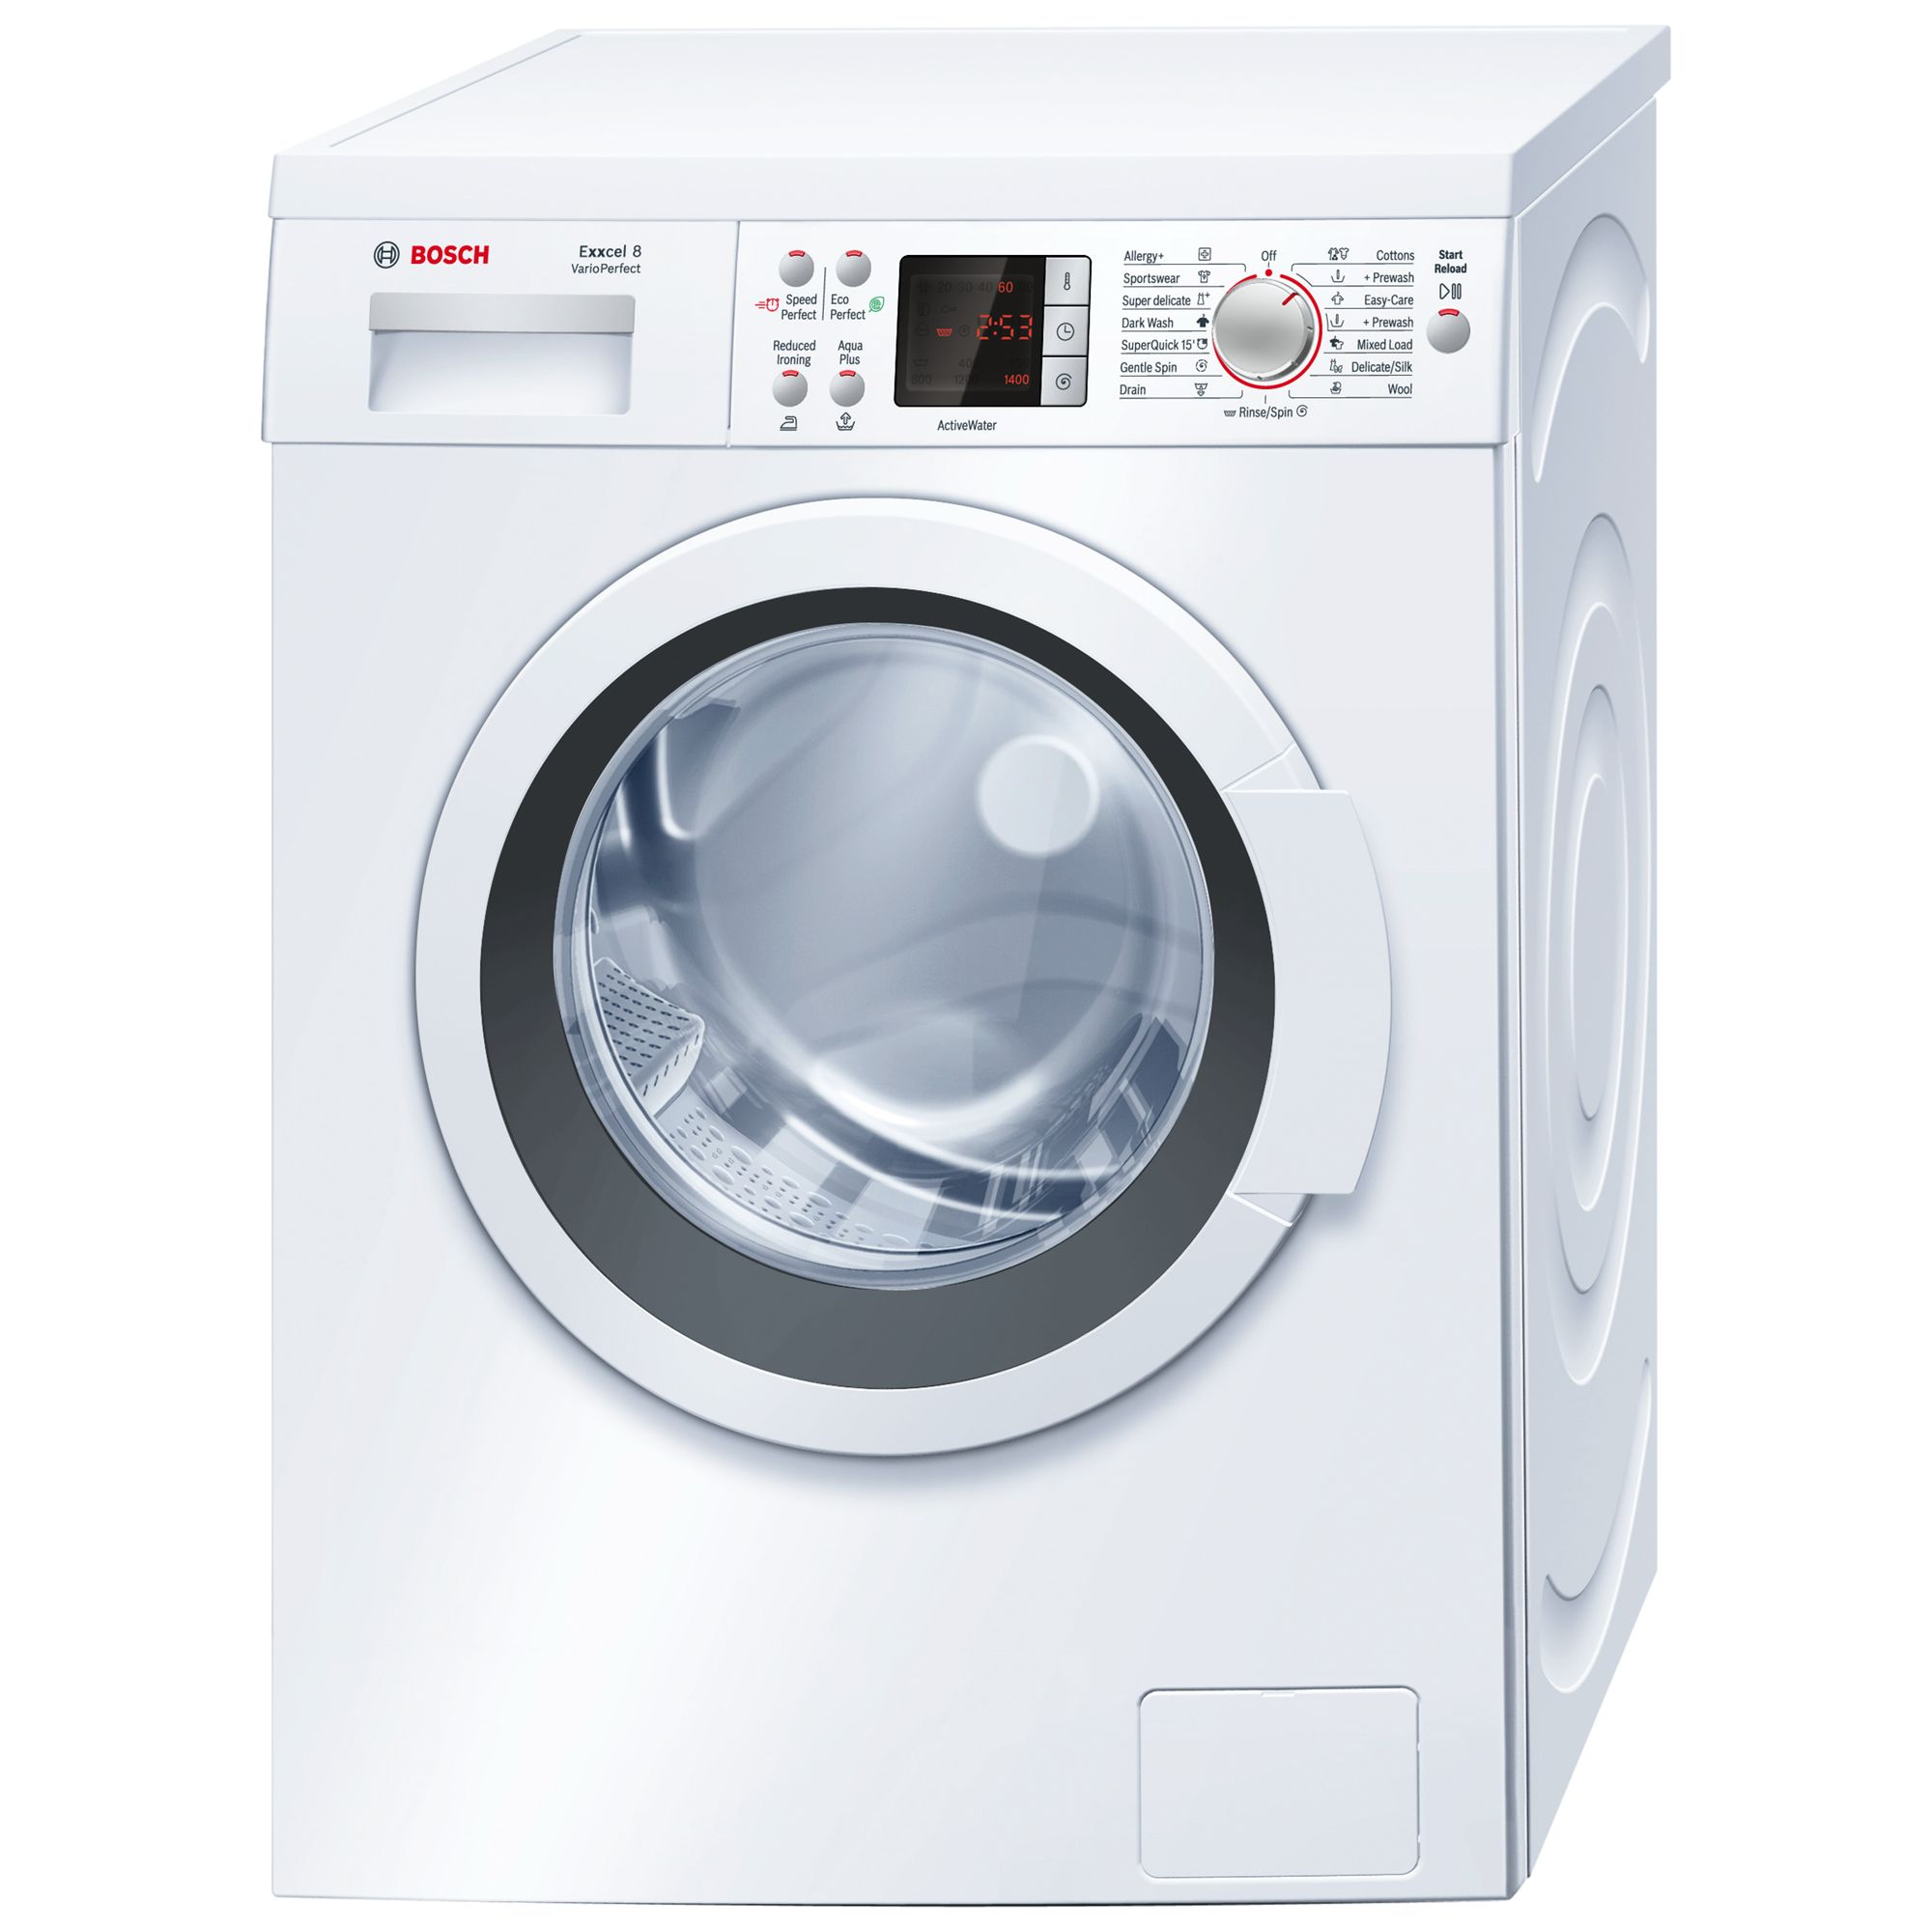 LG F1281TD Washing Machine, White